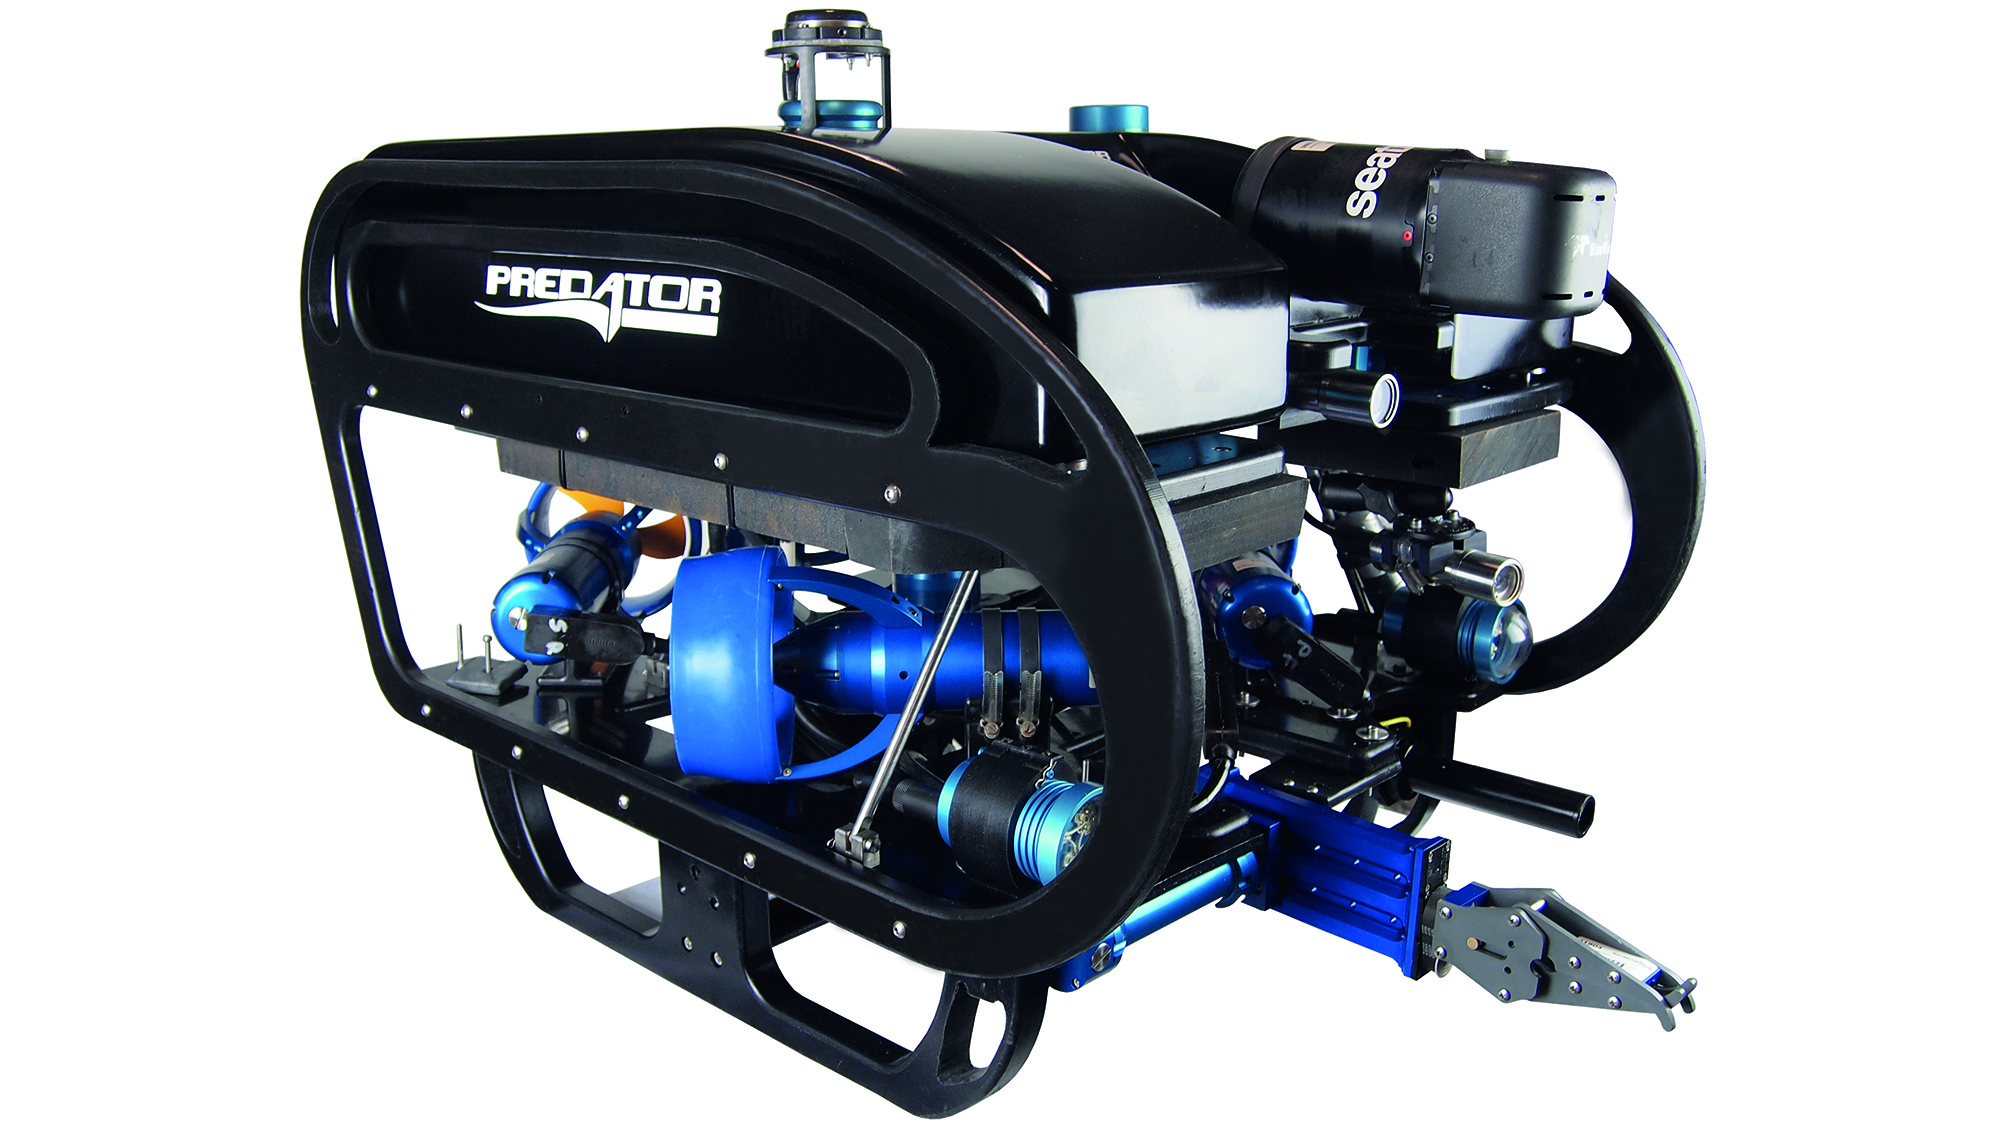 Seatronics Predator Elite ROV with Inuktun Manipulator